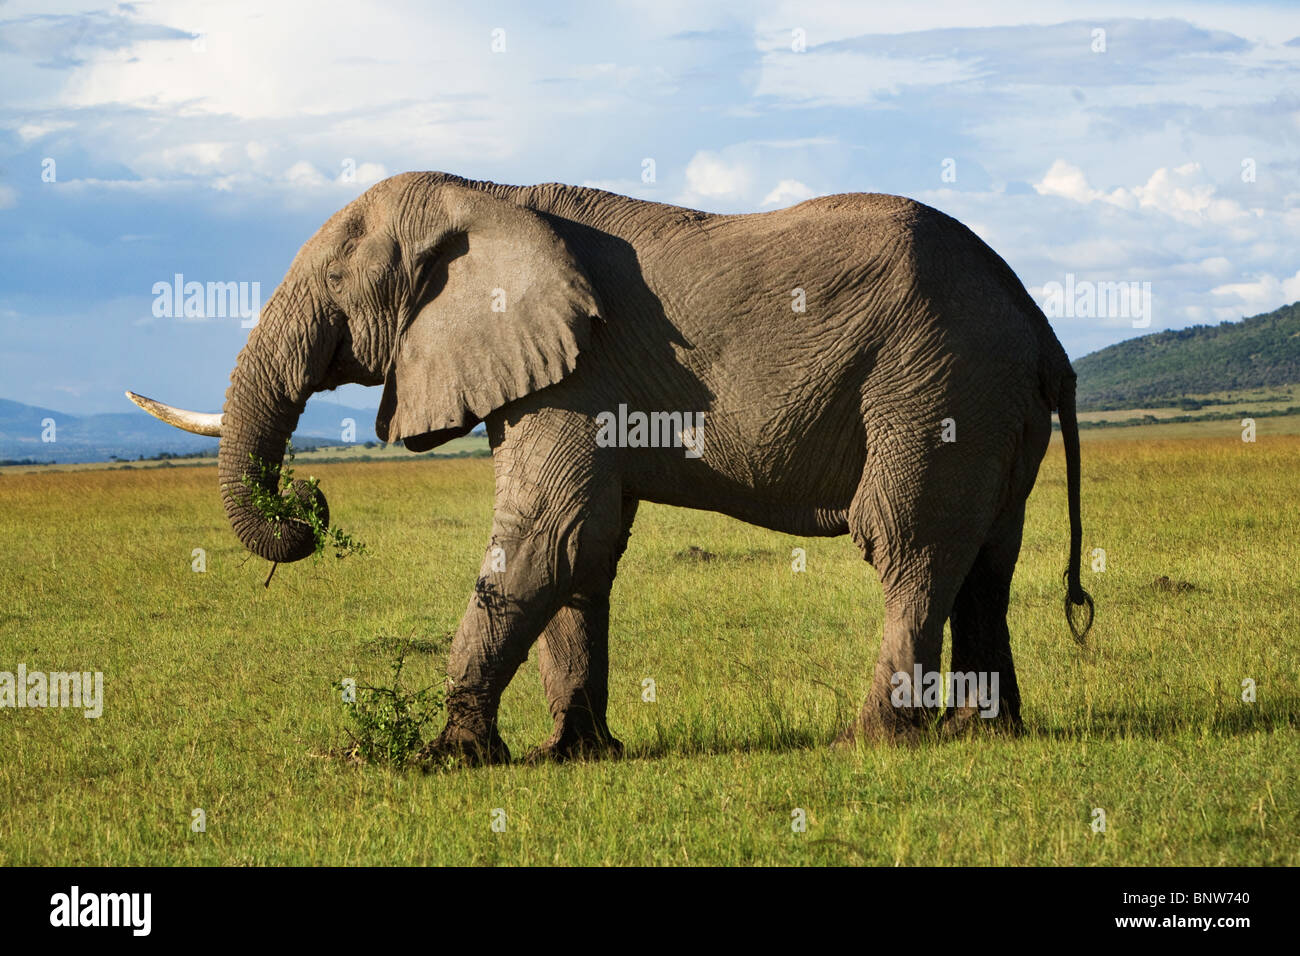 Elephant in the Masai Mara Kenya - Stock Image